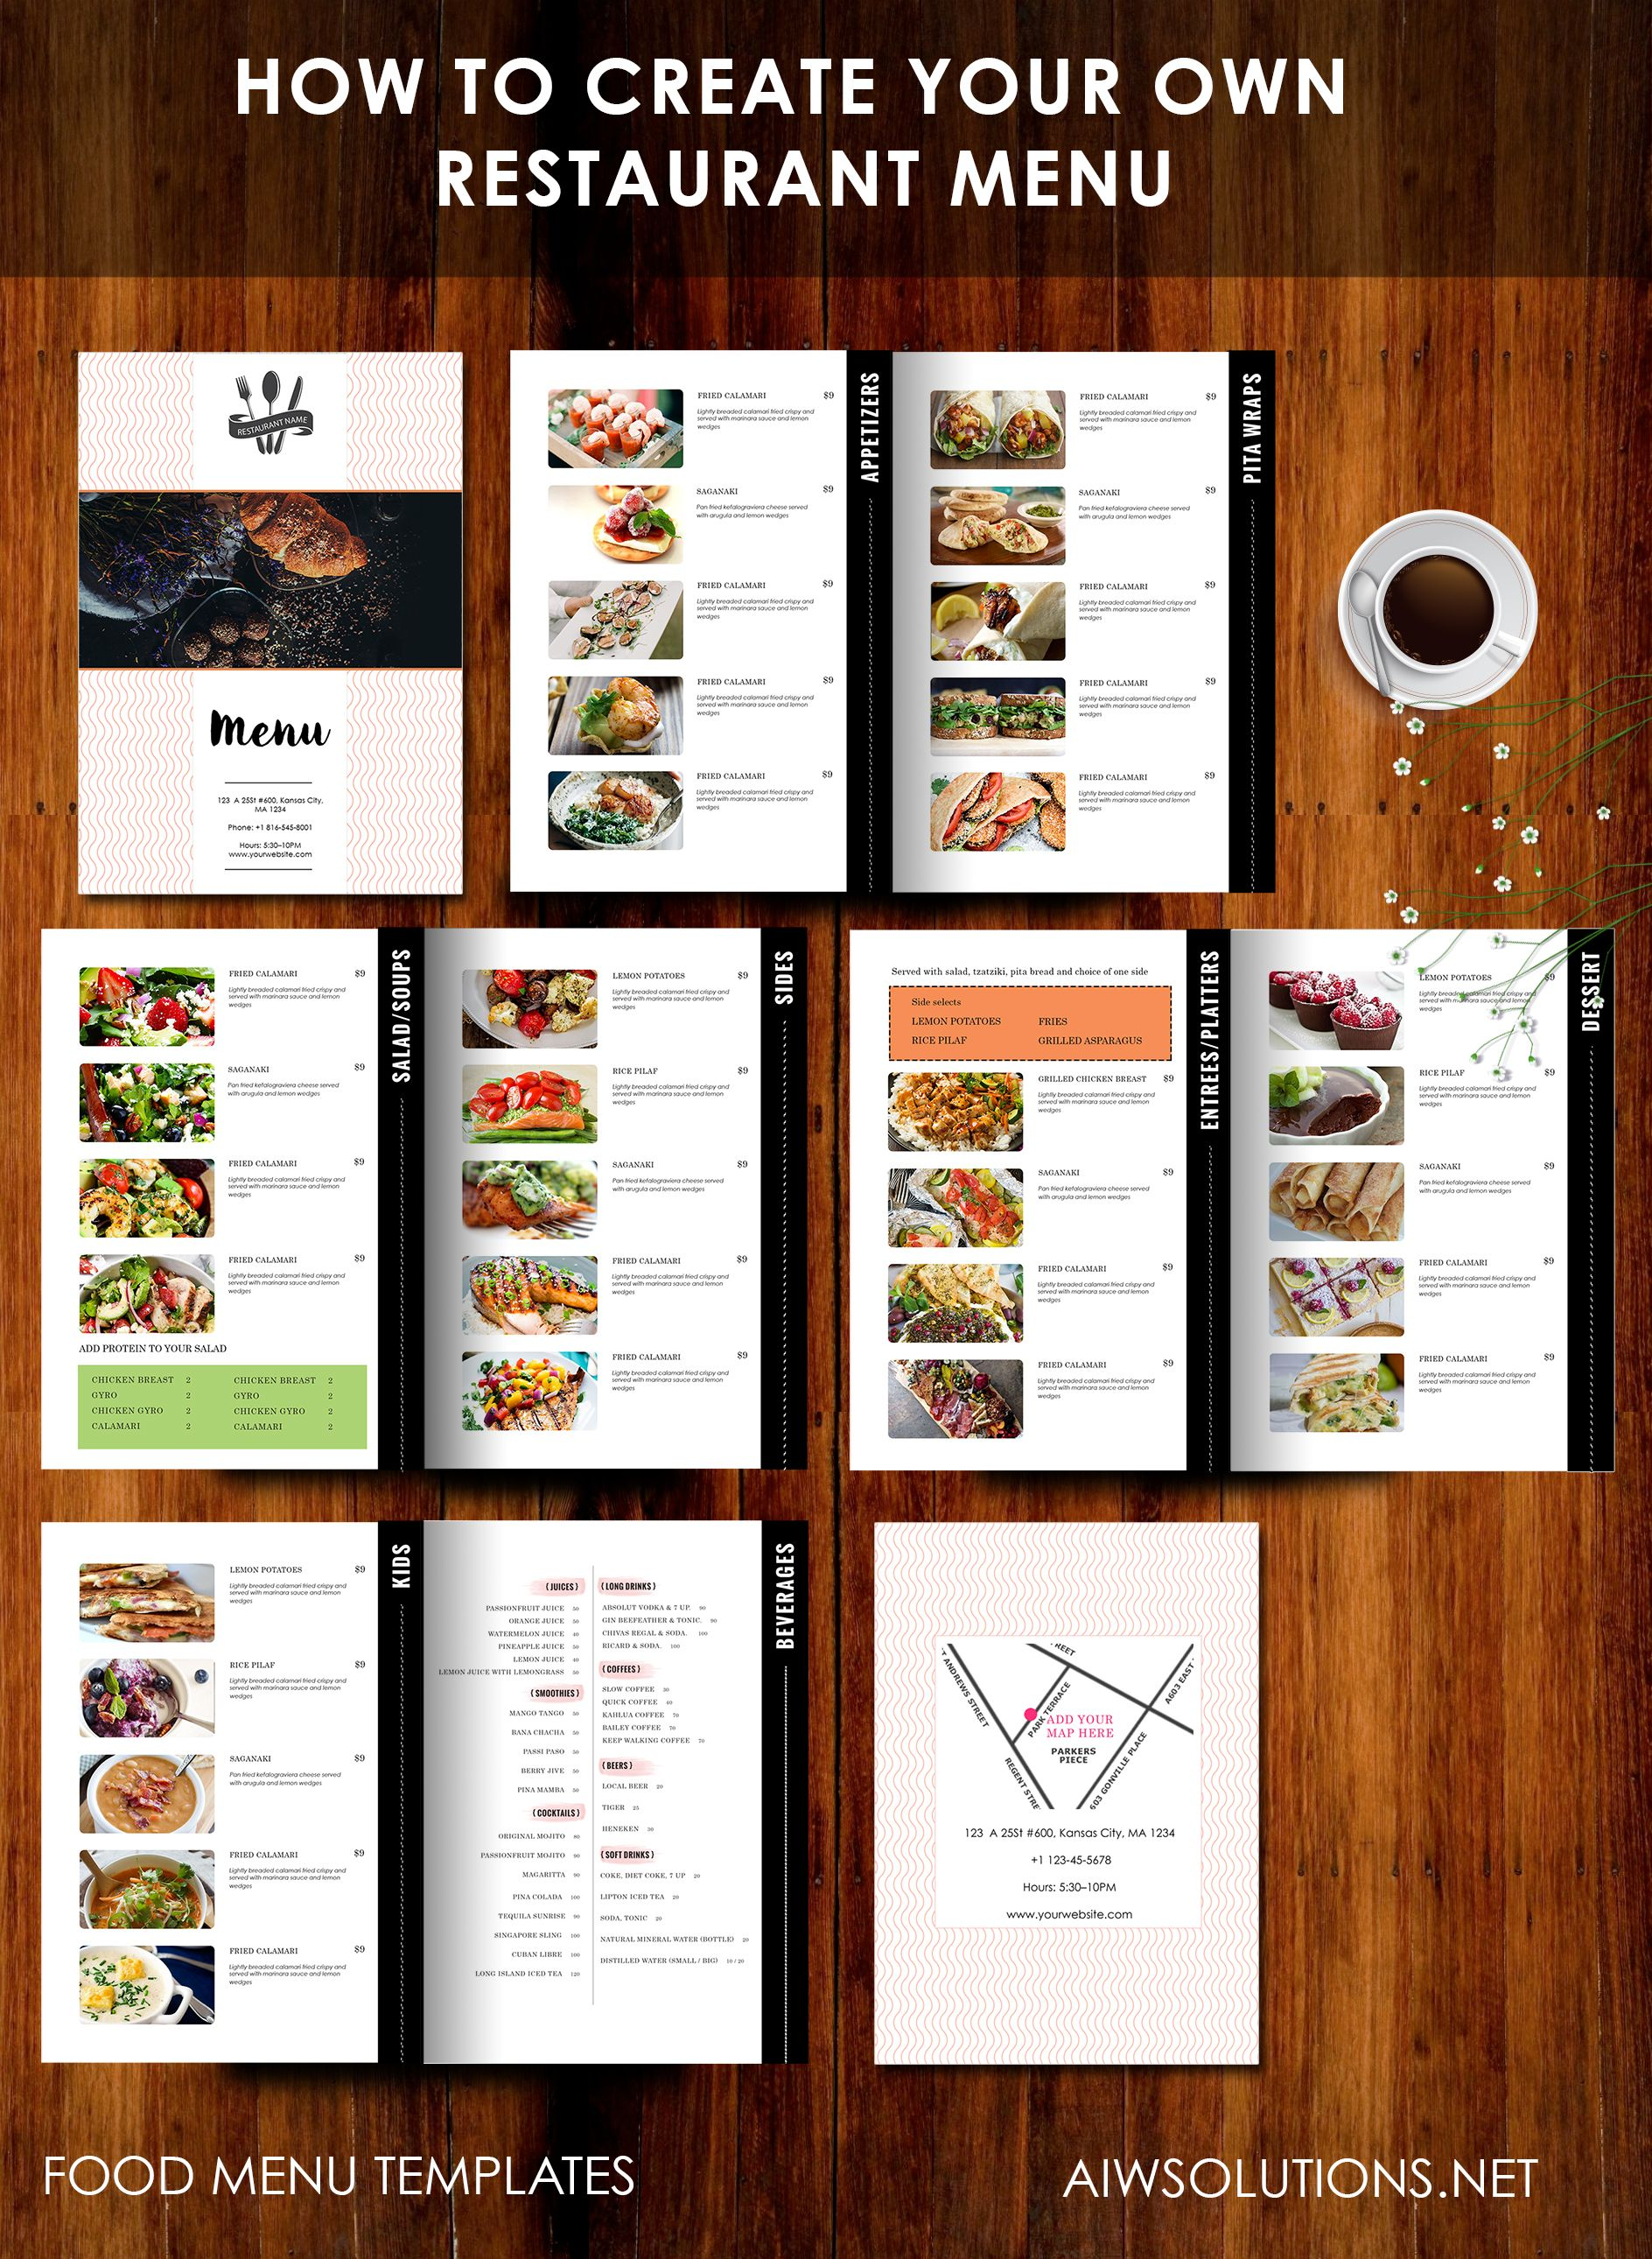 How To Create Your Own Restaurant MenuDrink Menu Bar Menu Food